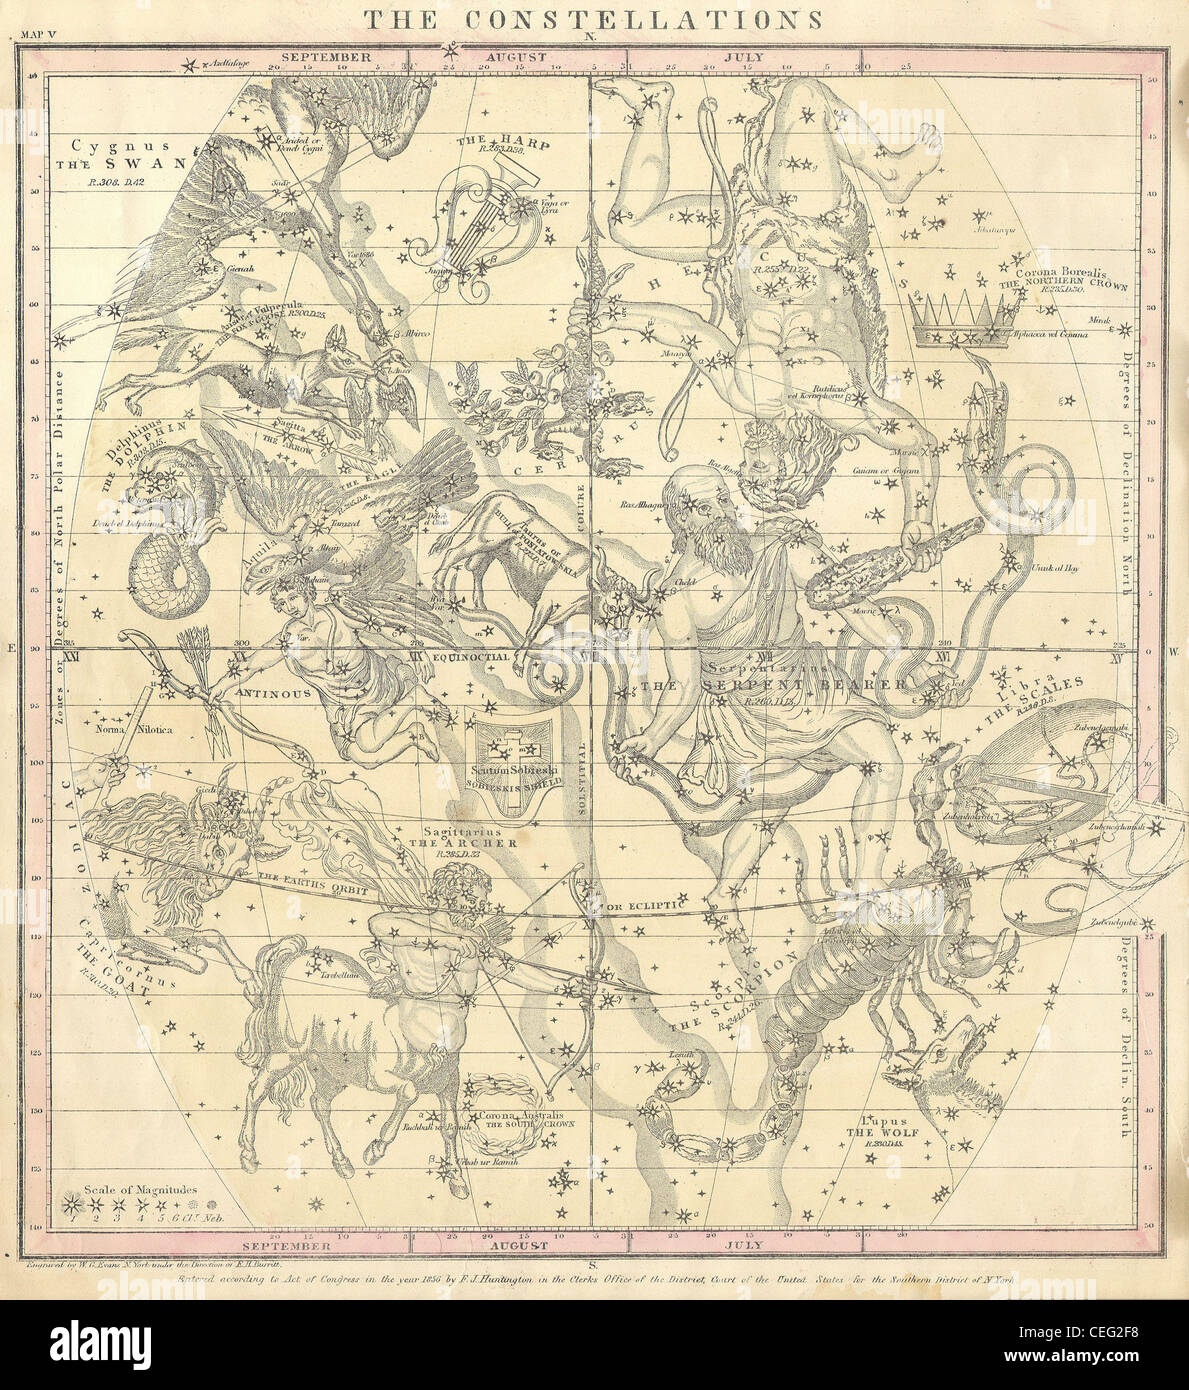 1856 Burritt / Huntington Map of the Constellations or Stars in July, August & September - Stock Image